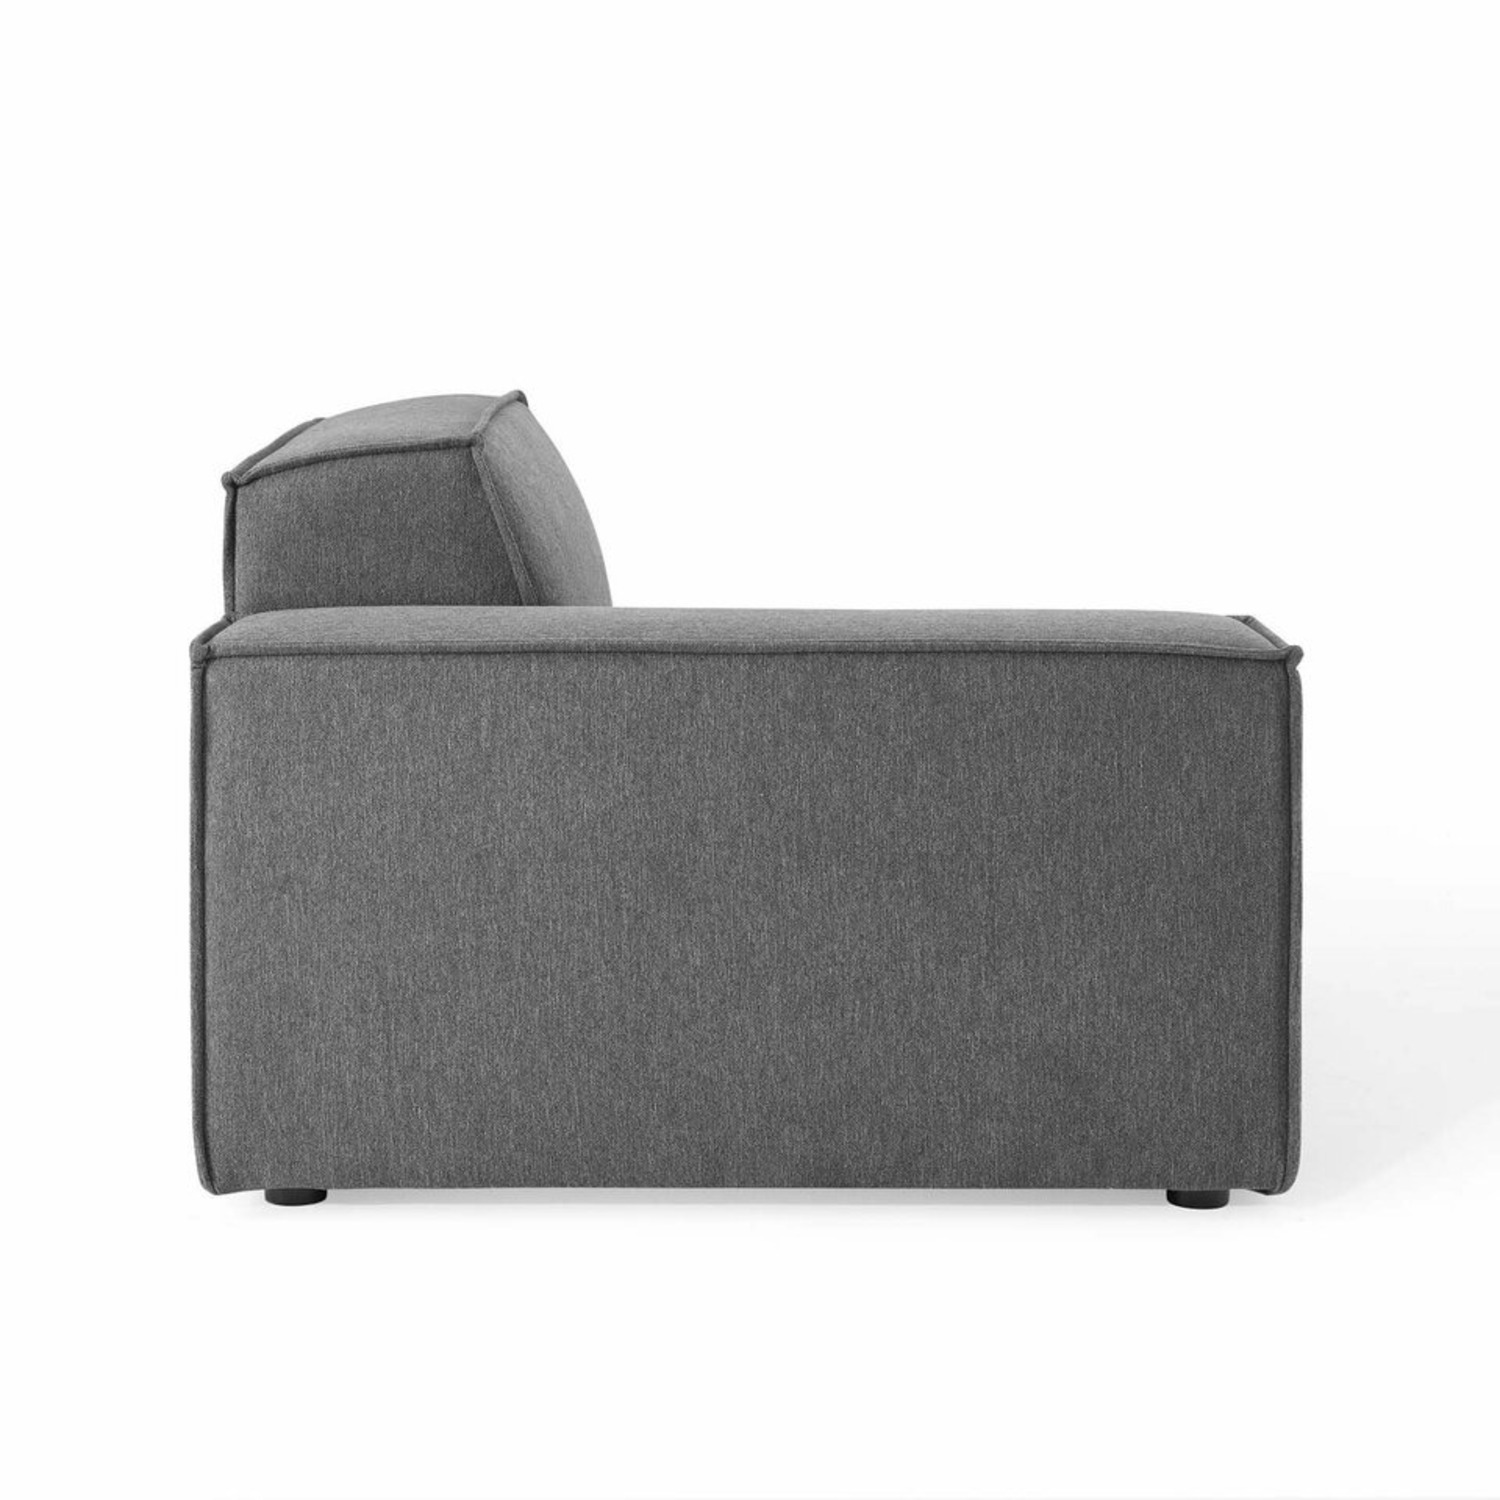 4-Piece Sectional Sofa In Charcoal Upholstery - image-6